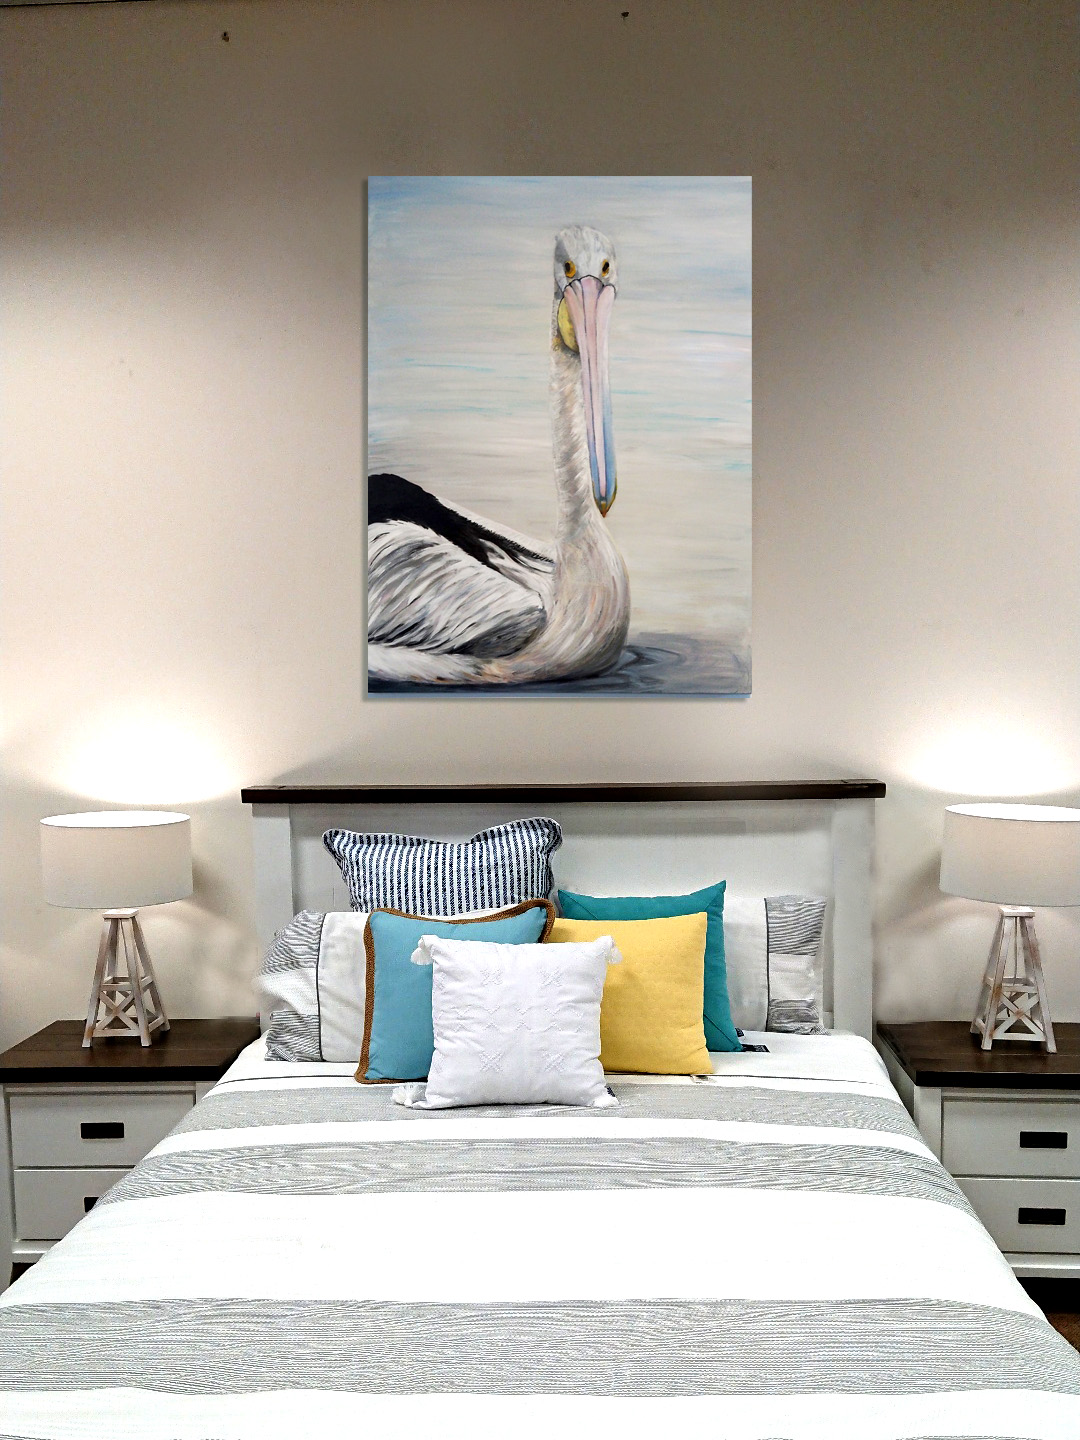 Pelican On Styled Bedroom Wall